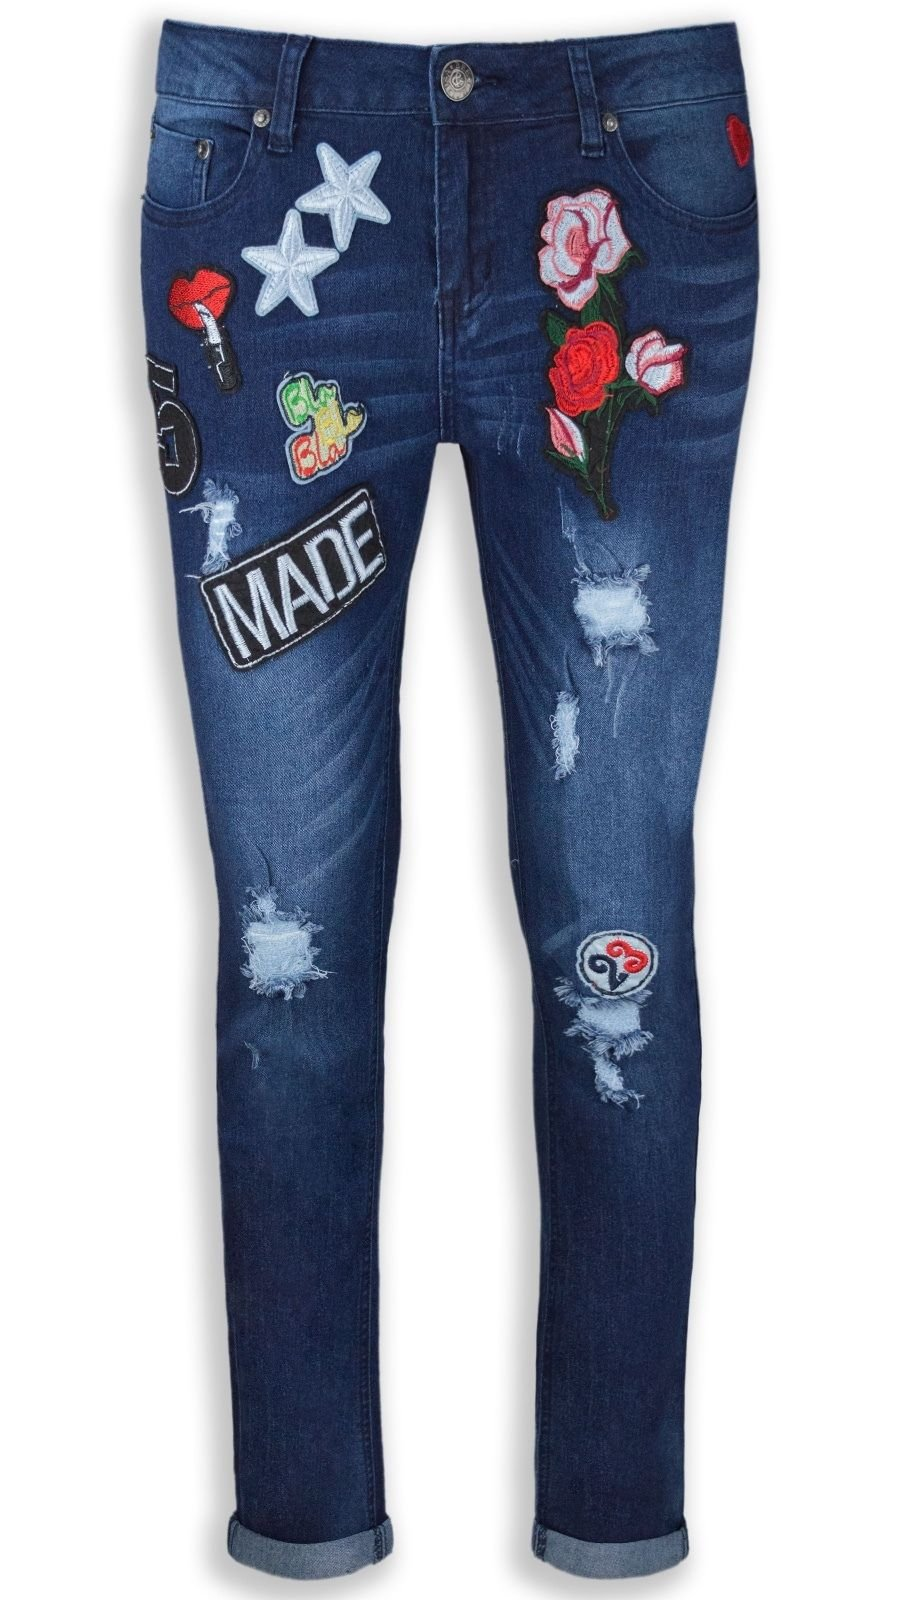 NEW Women Ladies Mid Waist Jeans Blue Patched ALL SIZES Patches Ripped Rip (7, Style 2)